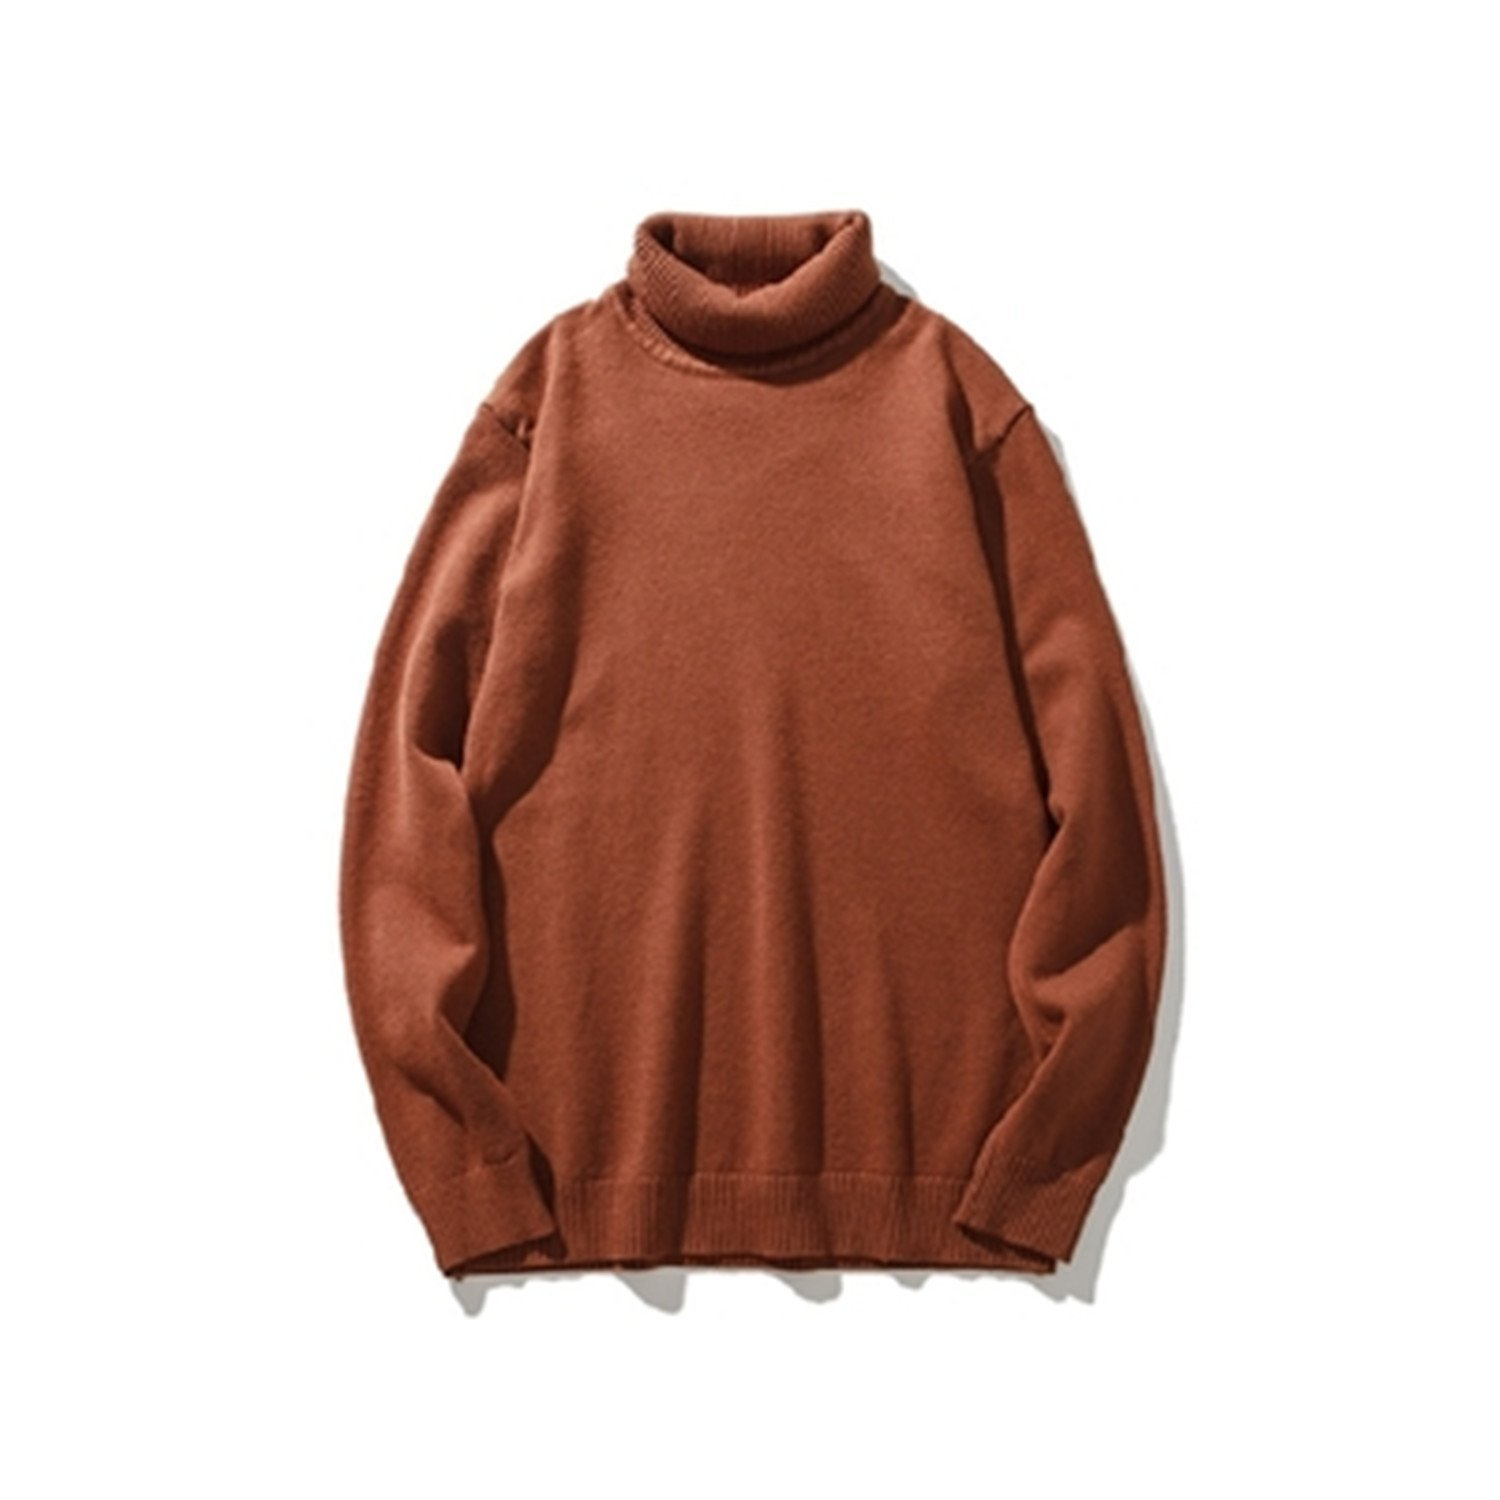 b4932212d9 Get Quotations · B dressy Turtleneck Sweater Men Knit High Elastic Jumper Men s  Sweaters And Pullovers Male TricotTops